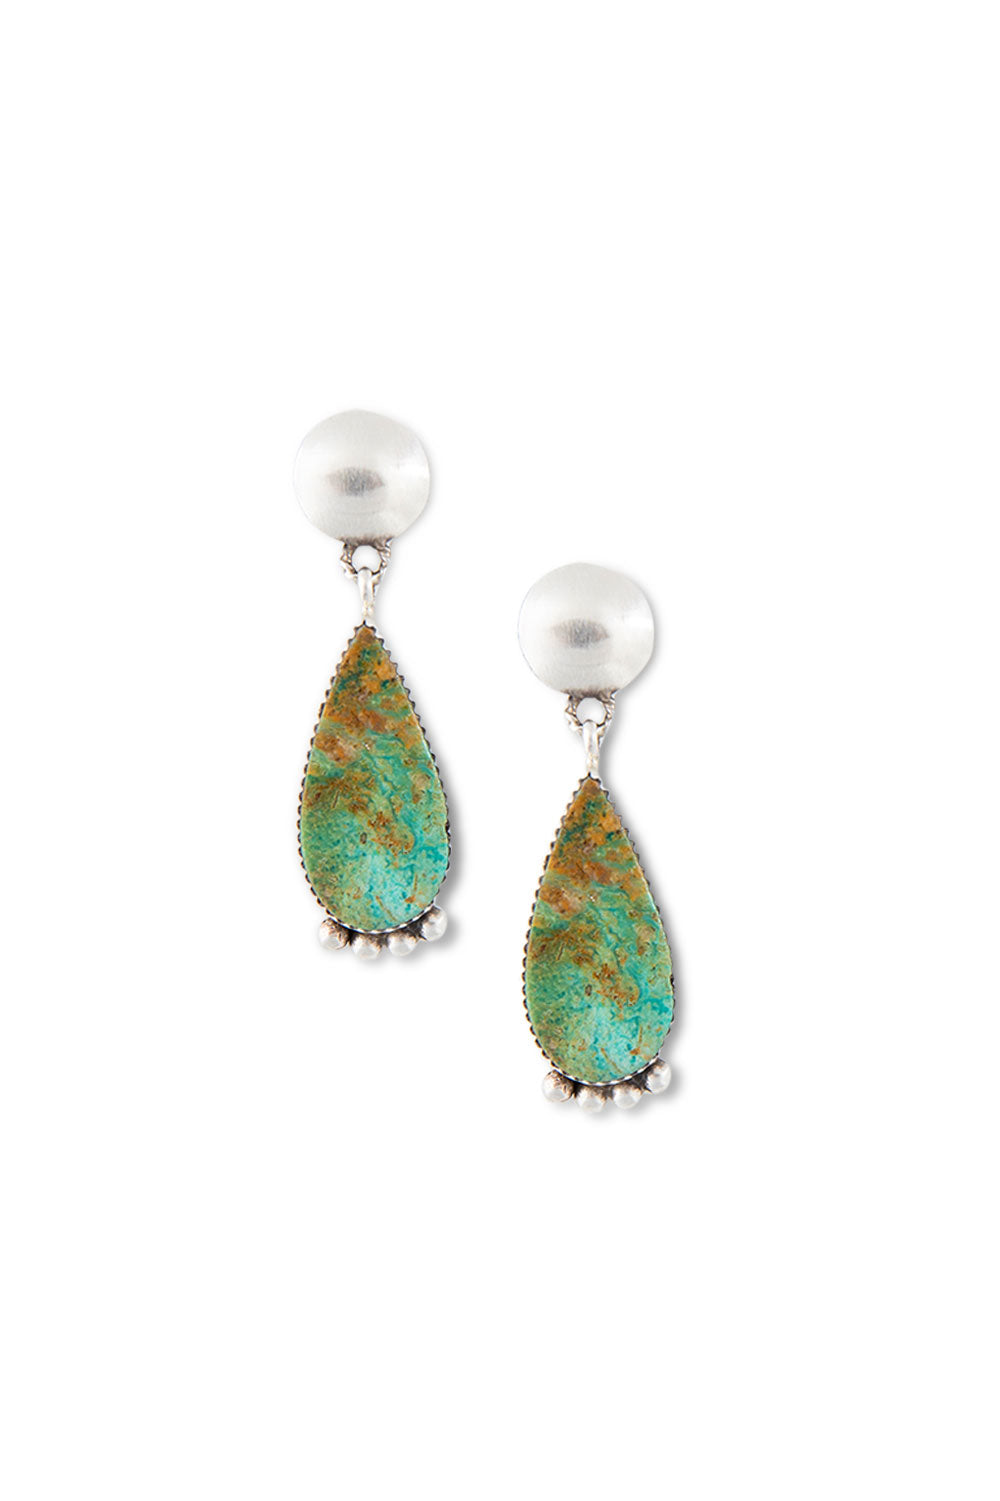 Earrings, Slab, Turquoise, Hallmark, 404